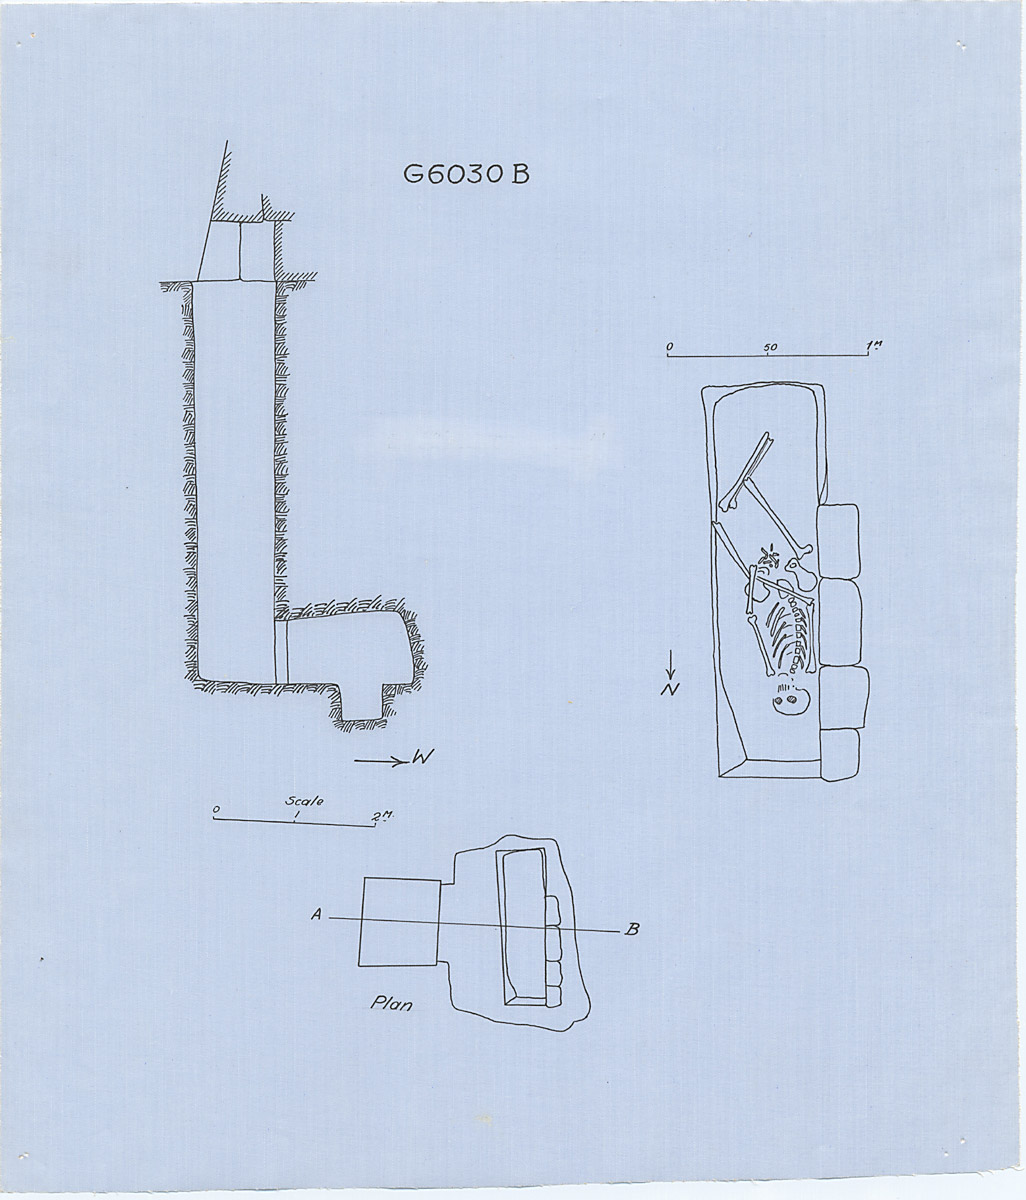 Maps and plans: G 6030, Shaft B